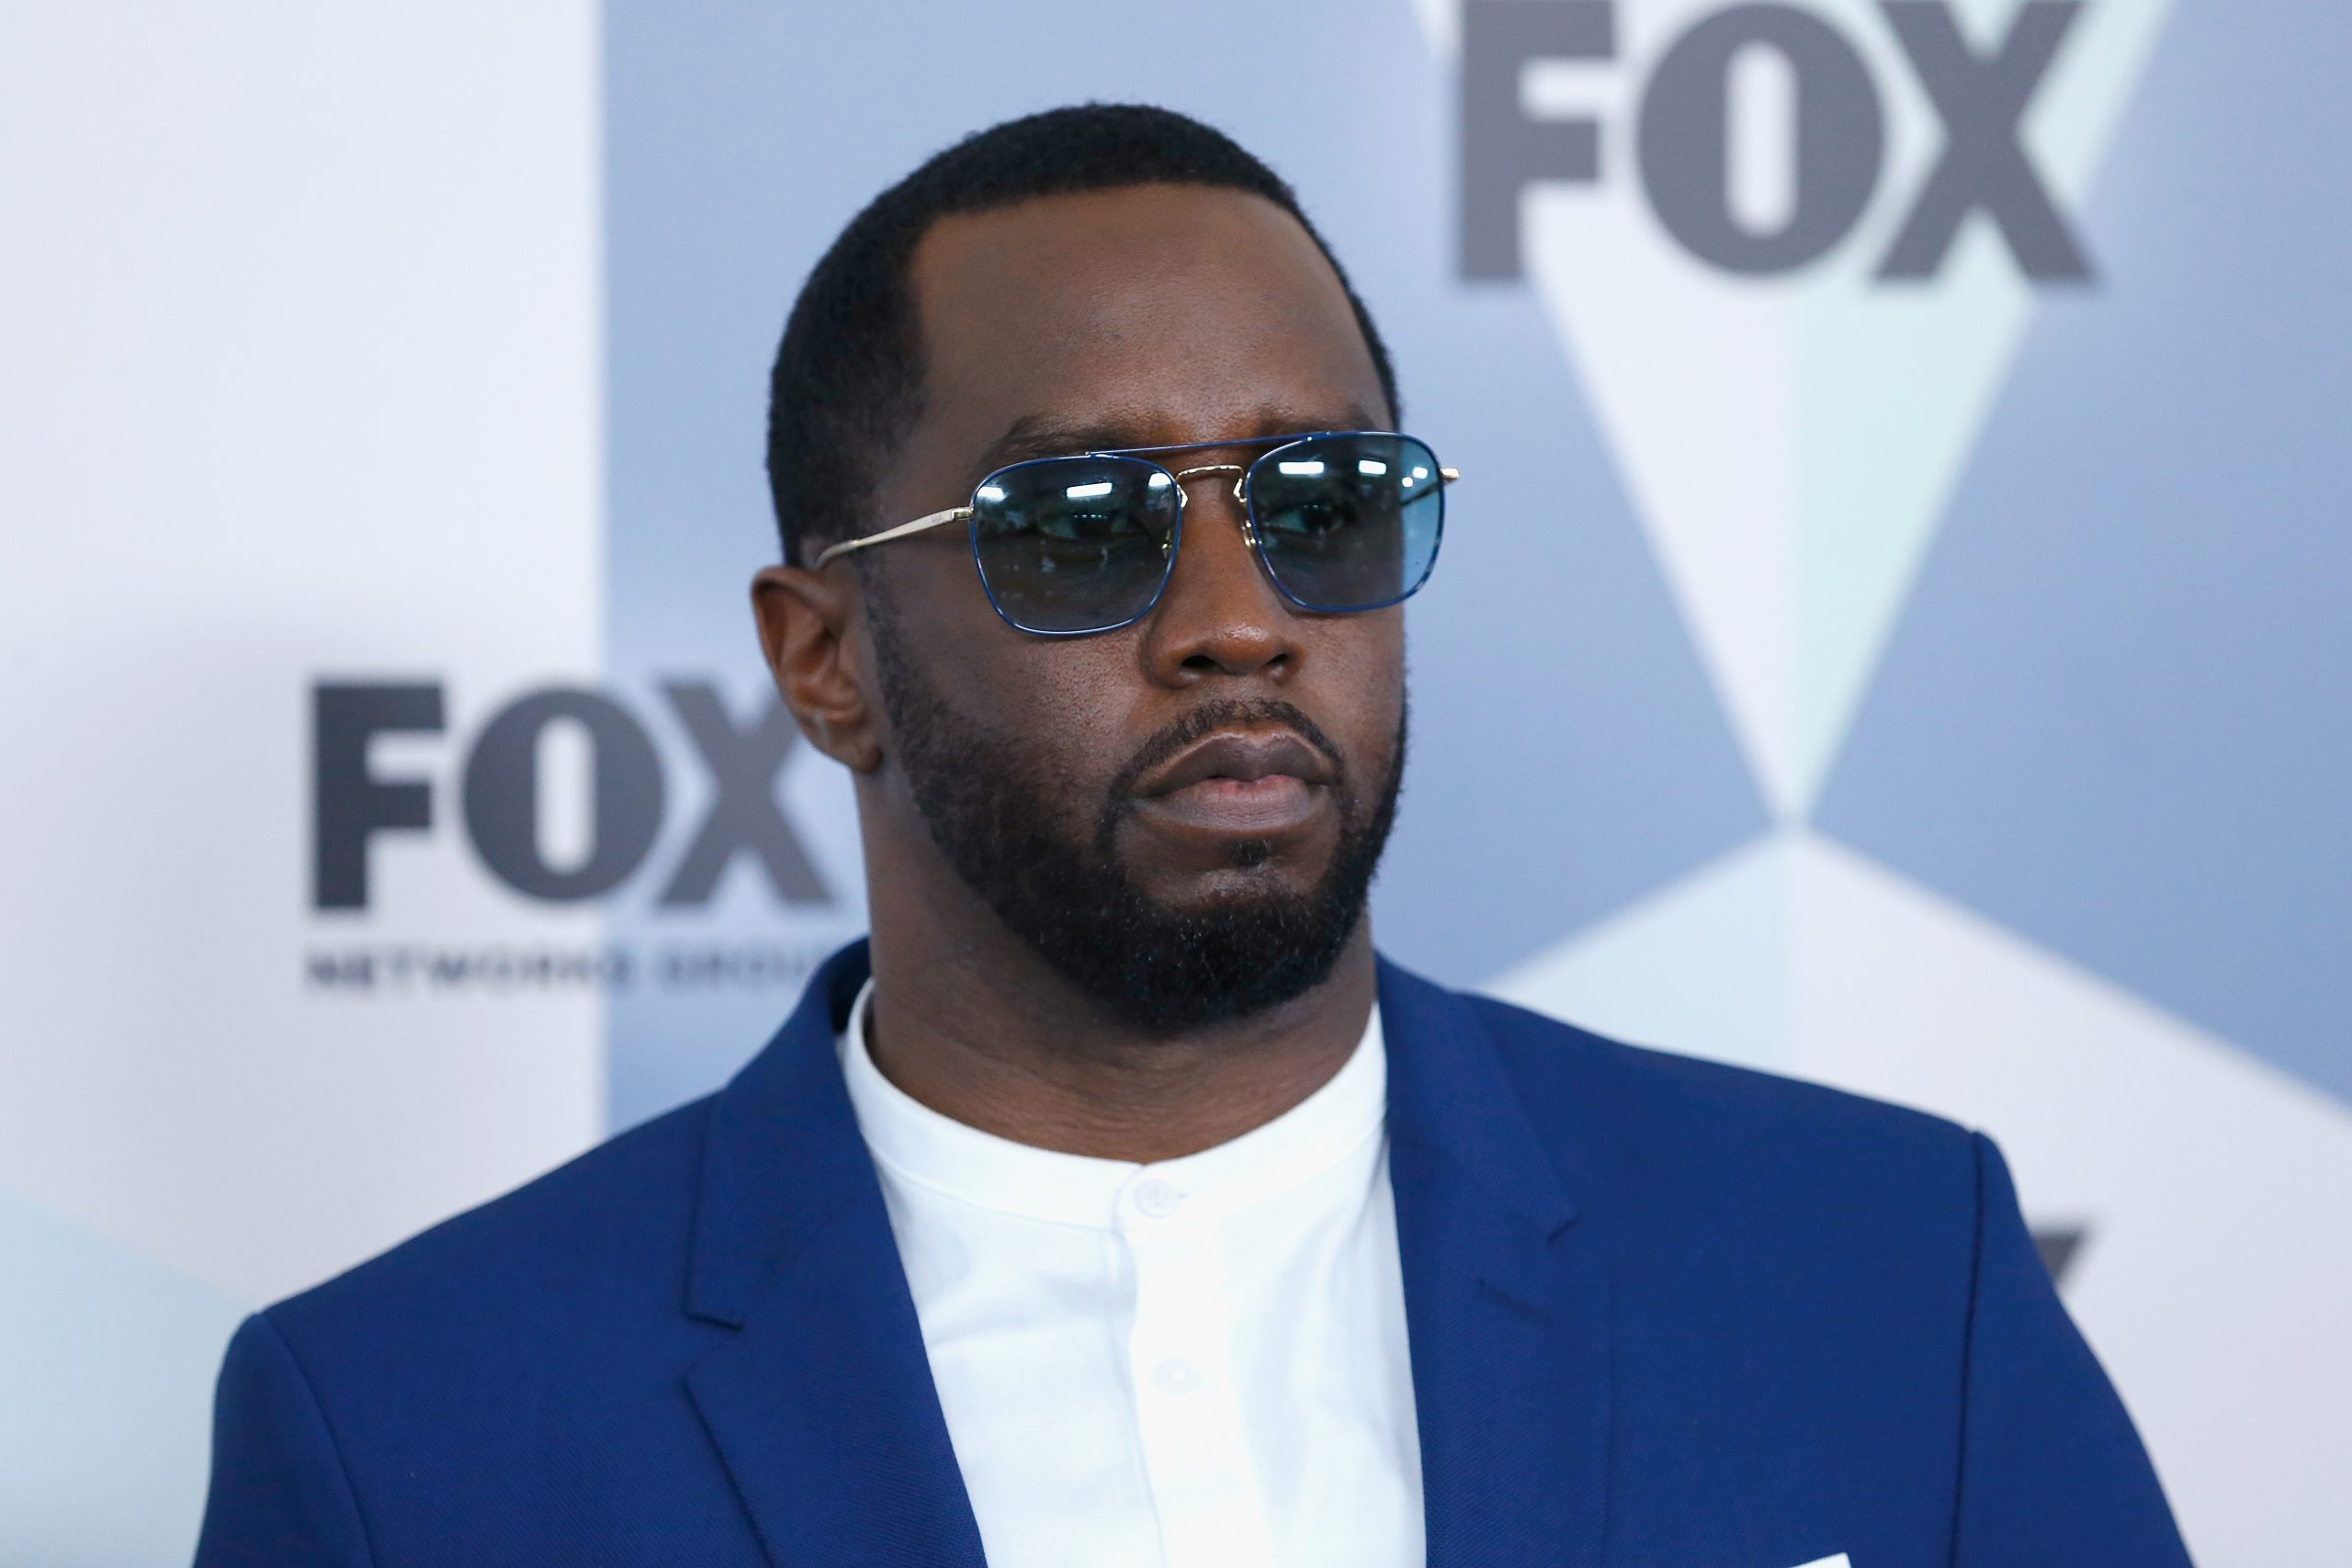 Sean 'Diddy' Combs reveals new middle name: 'Welcome to the Love Era'